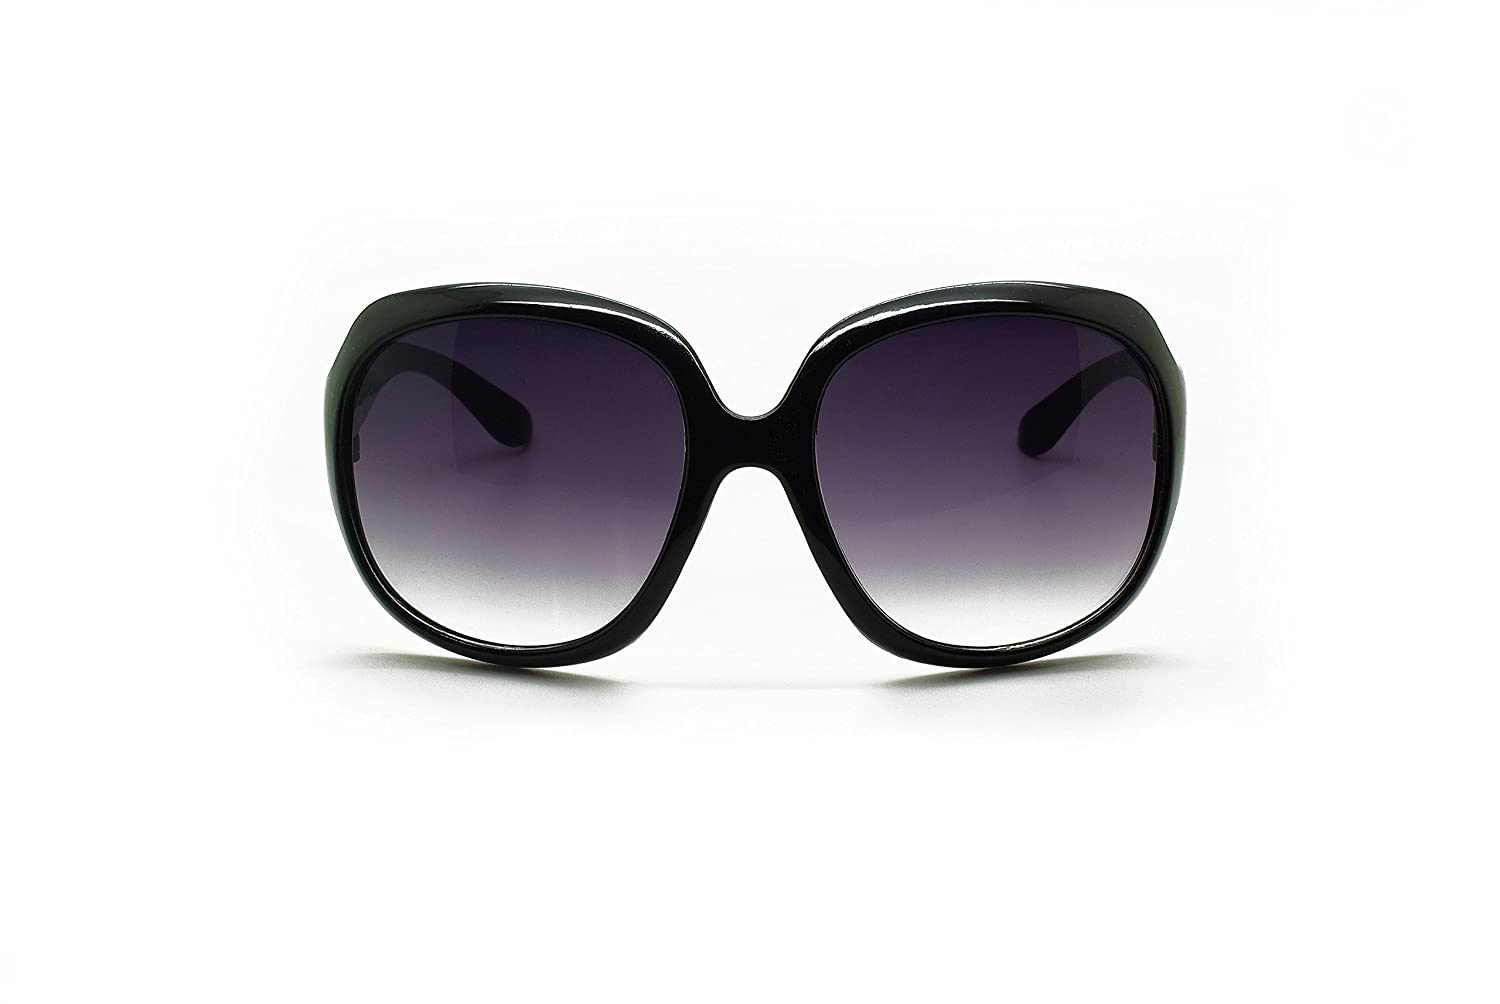 ASVP Shop® New Women's Fashion Sunglasses with Stylish Large Frame Round Vintage/Retro 70's Design and 100% UV400 Protection in Black Frame with Purple Lenses